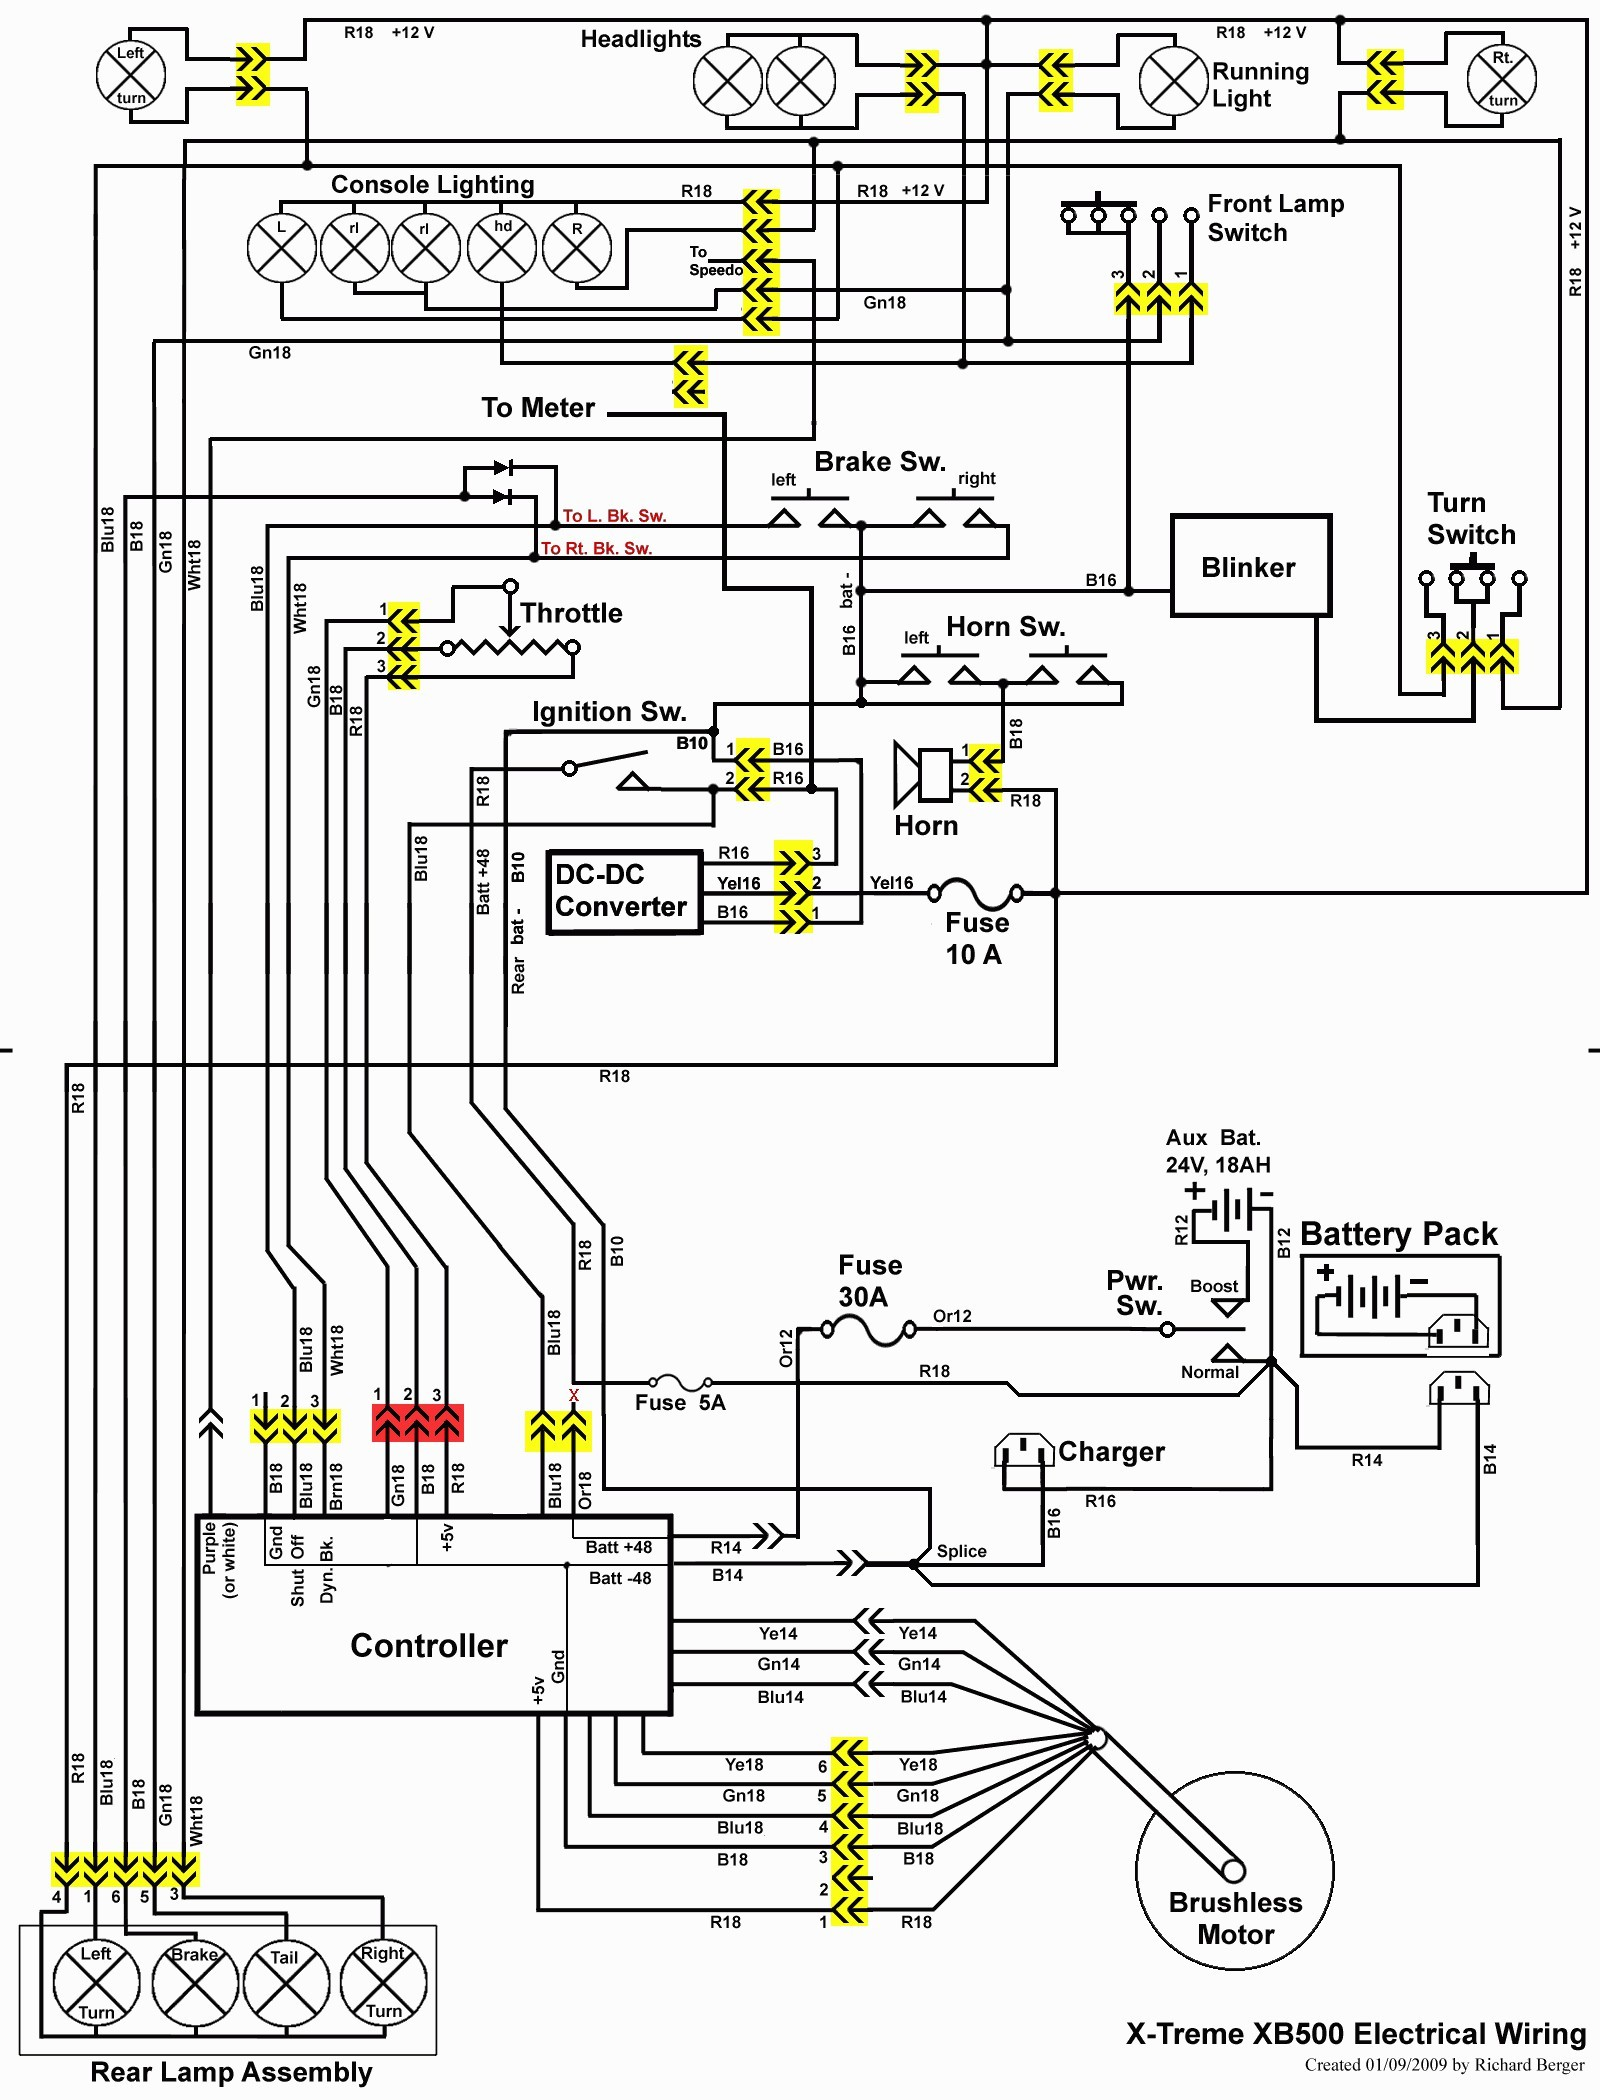 hight resolution of melex golf cart wiring diagram model 112 wiring diagrammelex 112 wiring diagram wiring diagrammelex 112 wiring